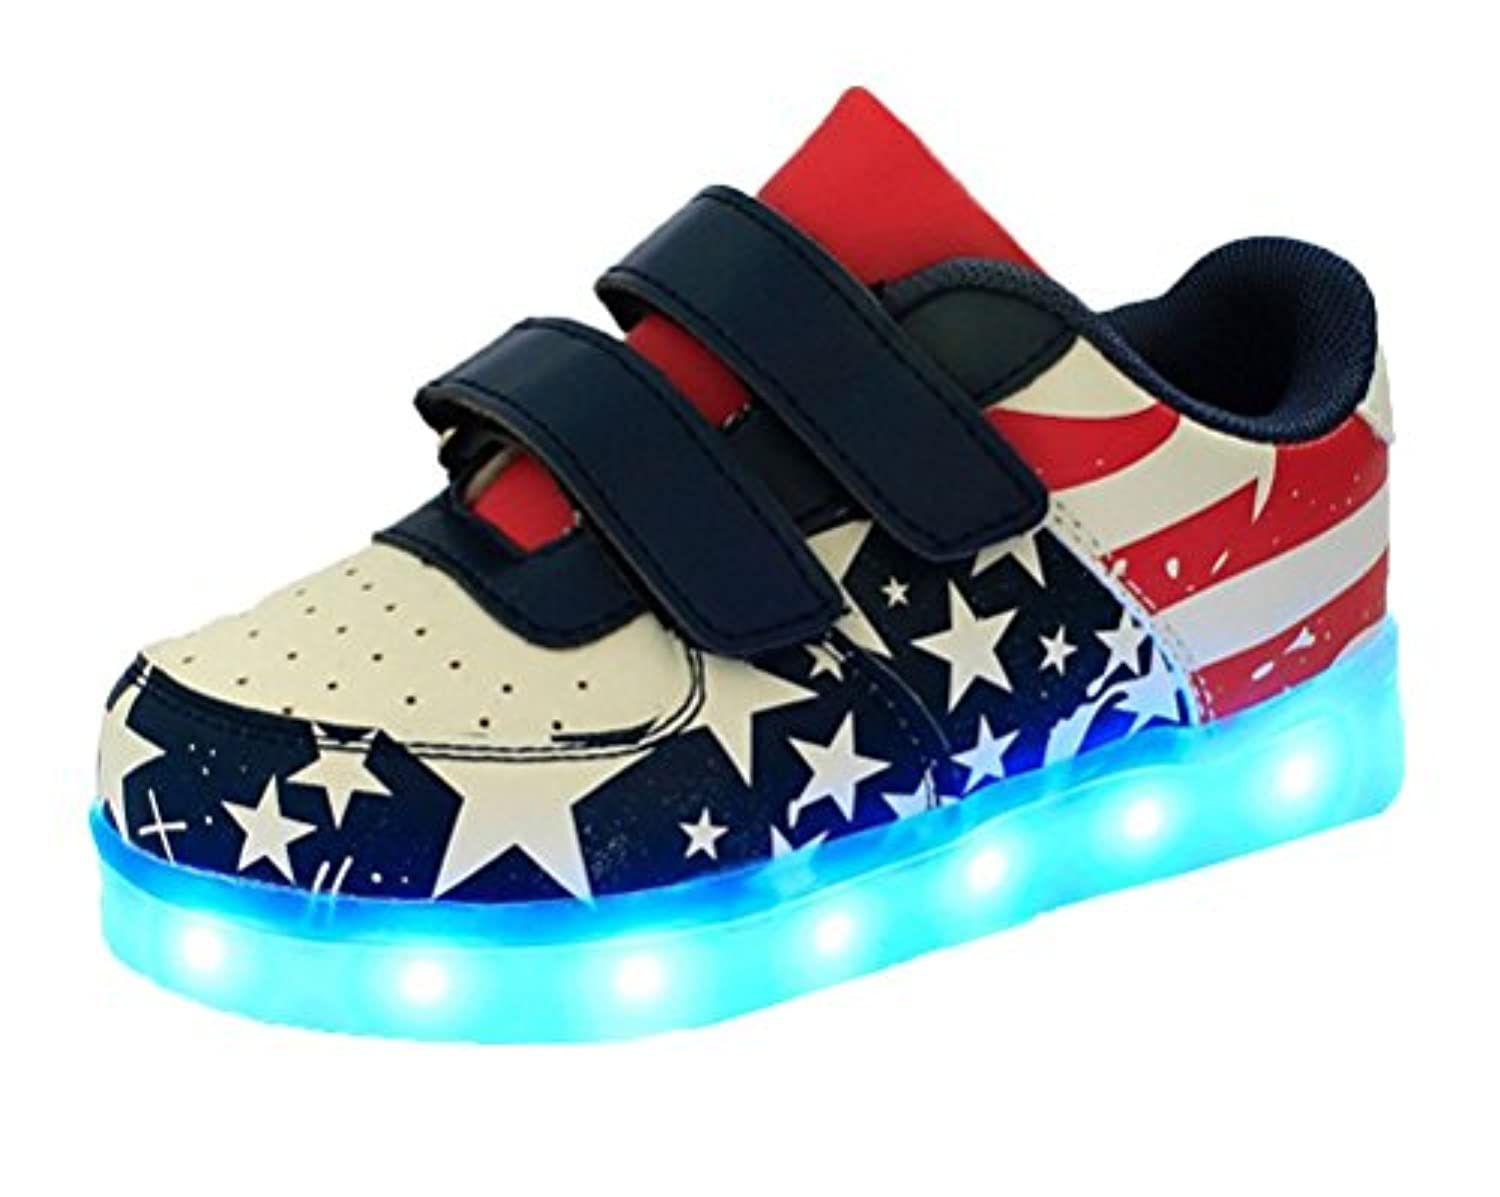 Ake Girls Boys LED Light Shoes USB Charging Luminous Sneakers Skidproof Flashing Sport Shoes -Blue